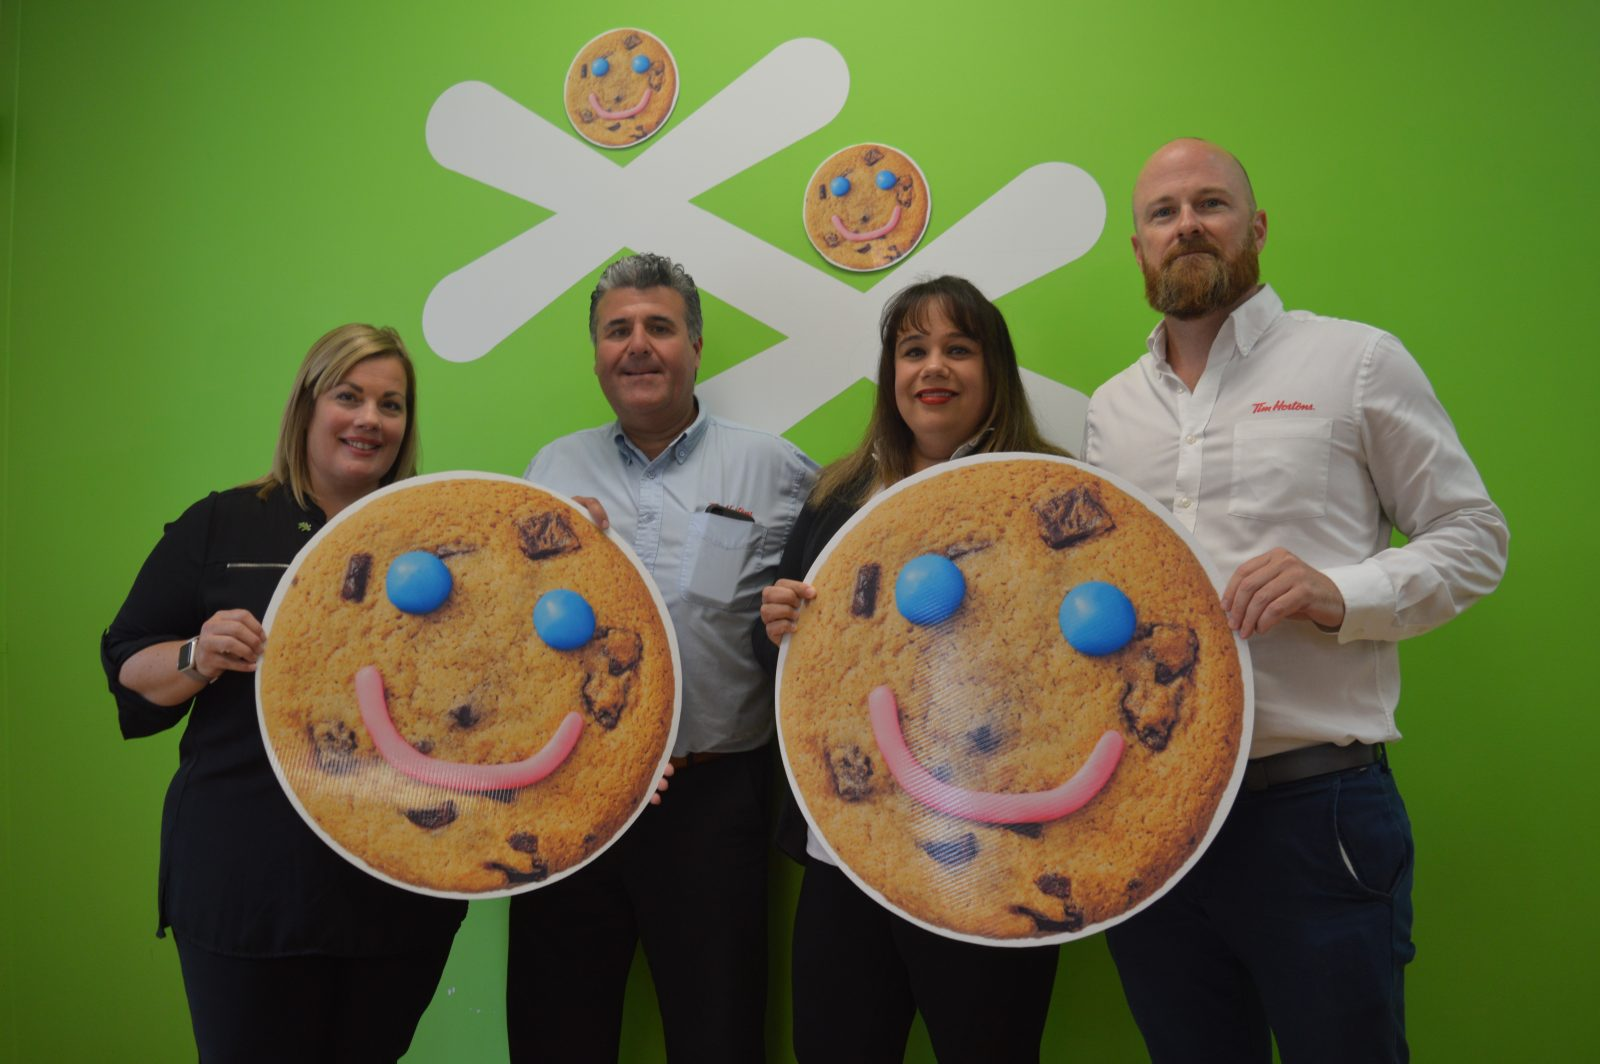 Smile Cookies supporting local Boys & Girls Club